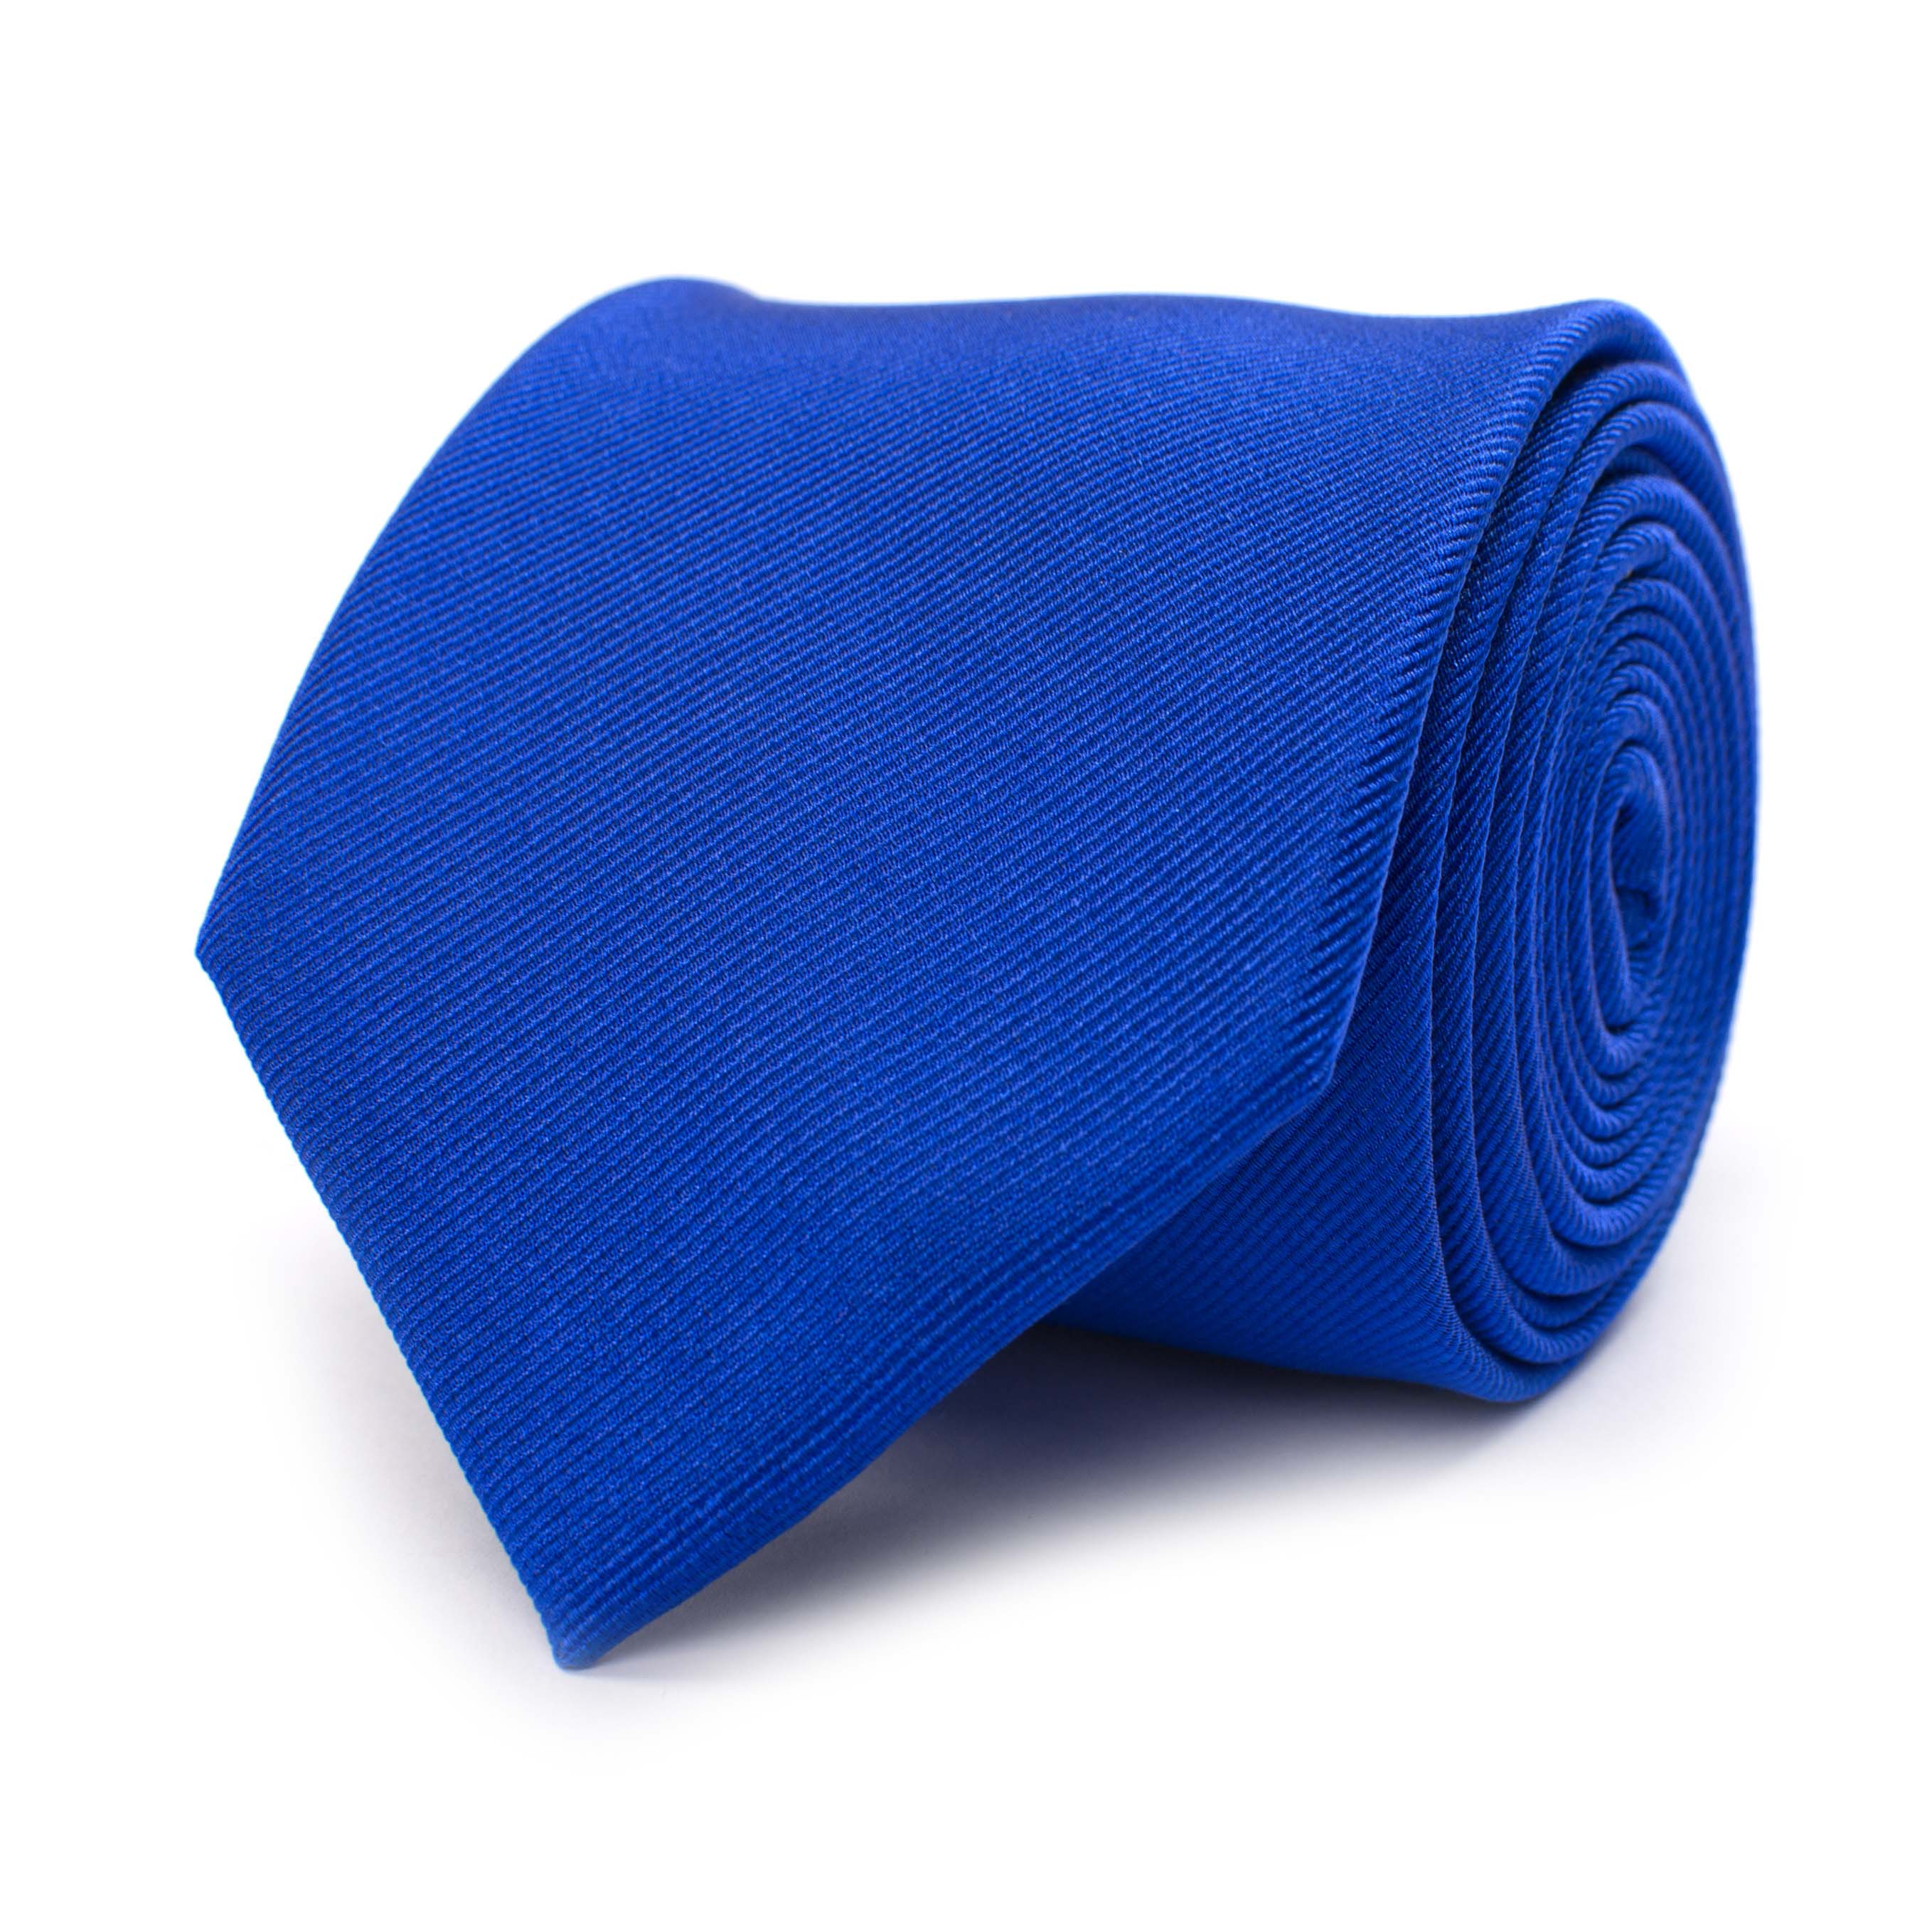 Tie classic ribbed royal blue